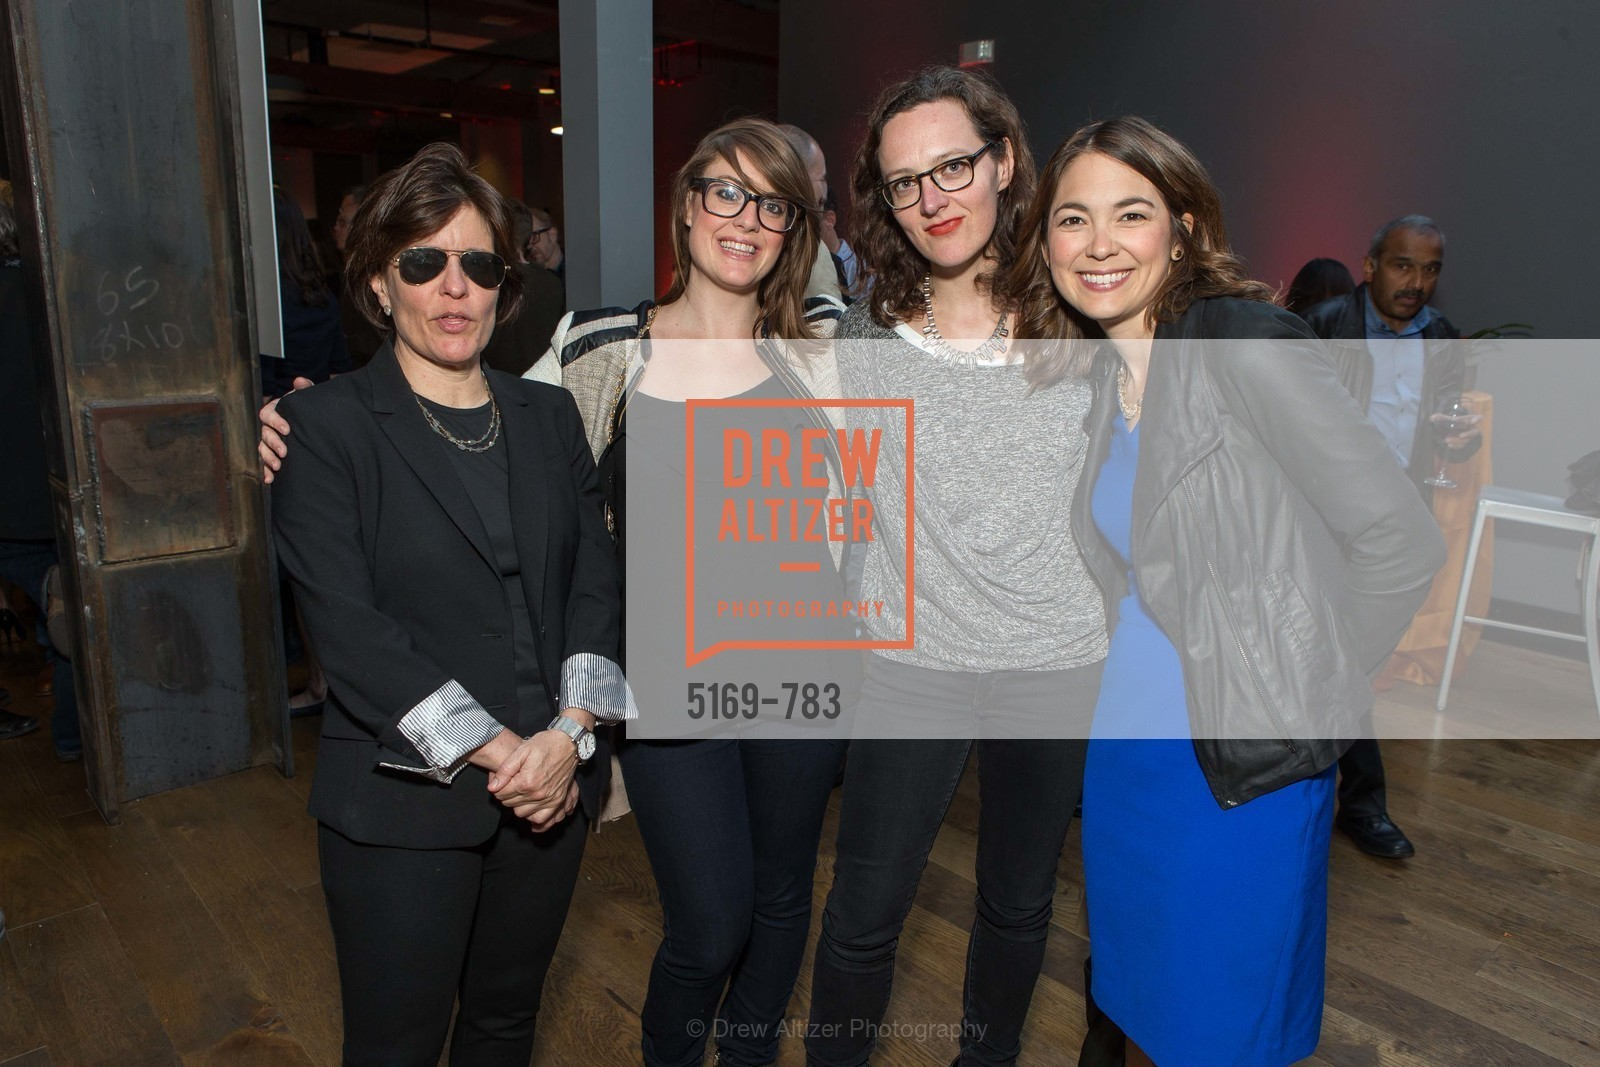 Kara Swisher, Carmel Deamicis, Astrid Maier, Emily Chang, HBO'S SILICON VALLEY San Francisco Screening, US, April 9th, 2015,Drew Altizer, Drew Altizer Photography, full-service agency, private events, San Francisco photographer, photographer california